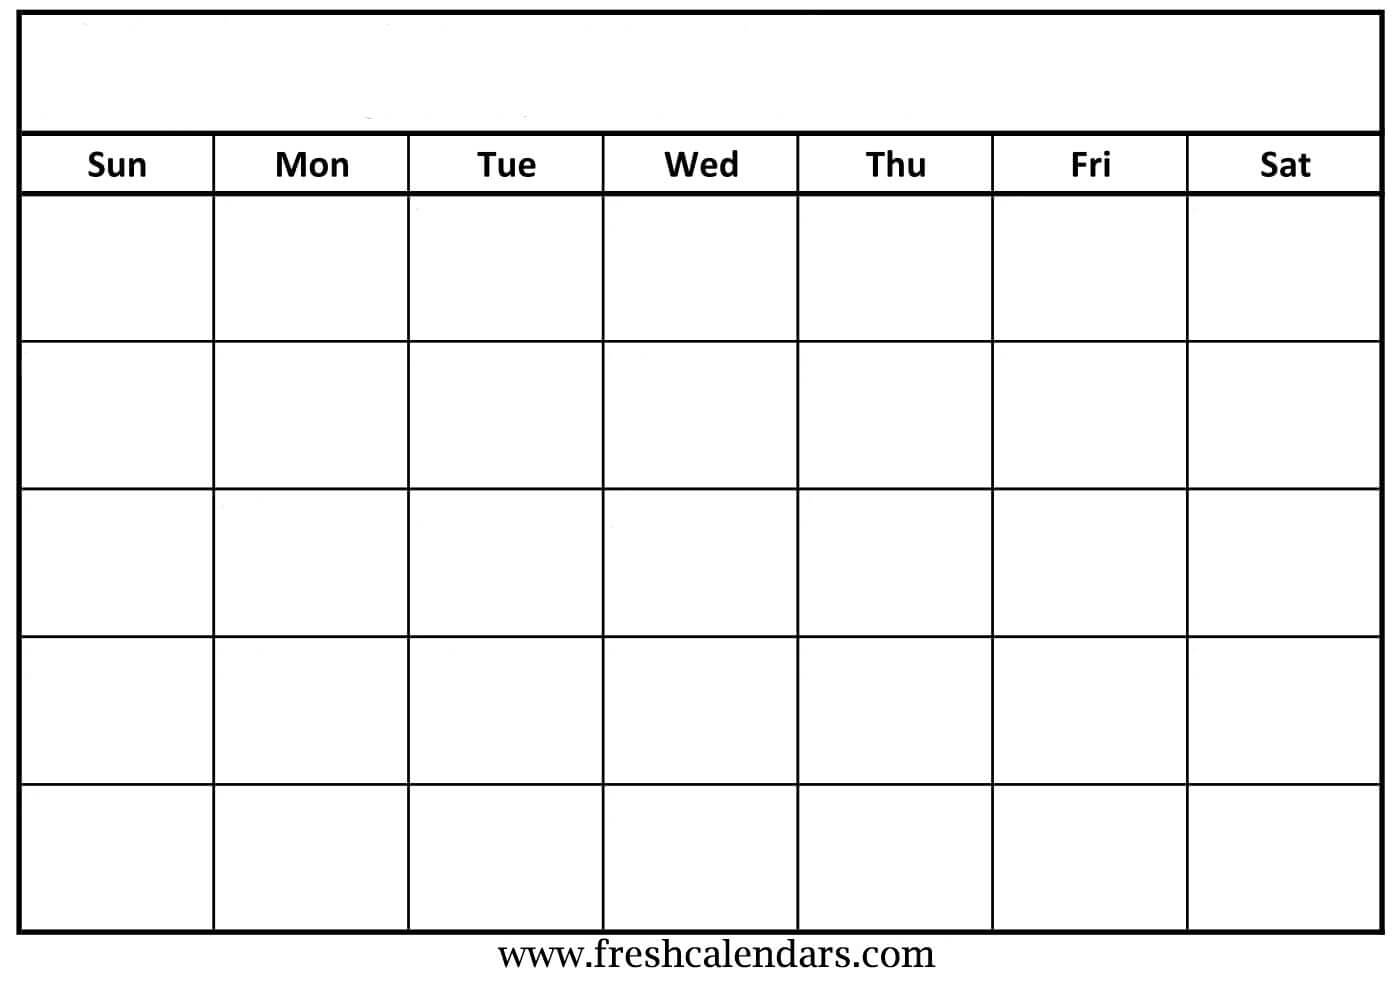 021 Template Ideas Blank Calendar Free Printable intended for Blank Calender Template